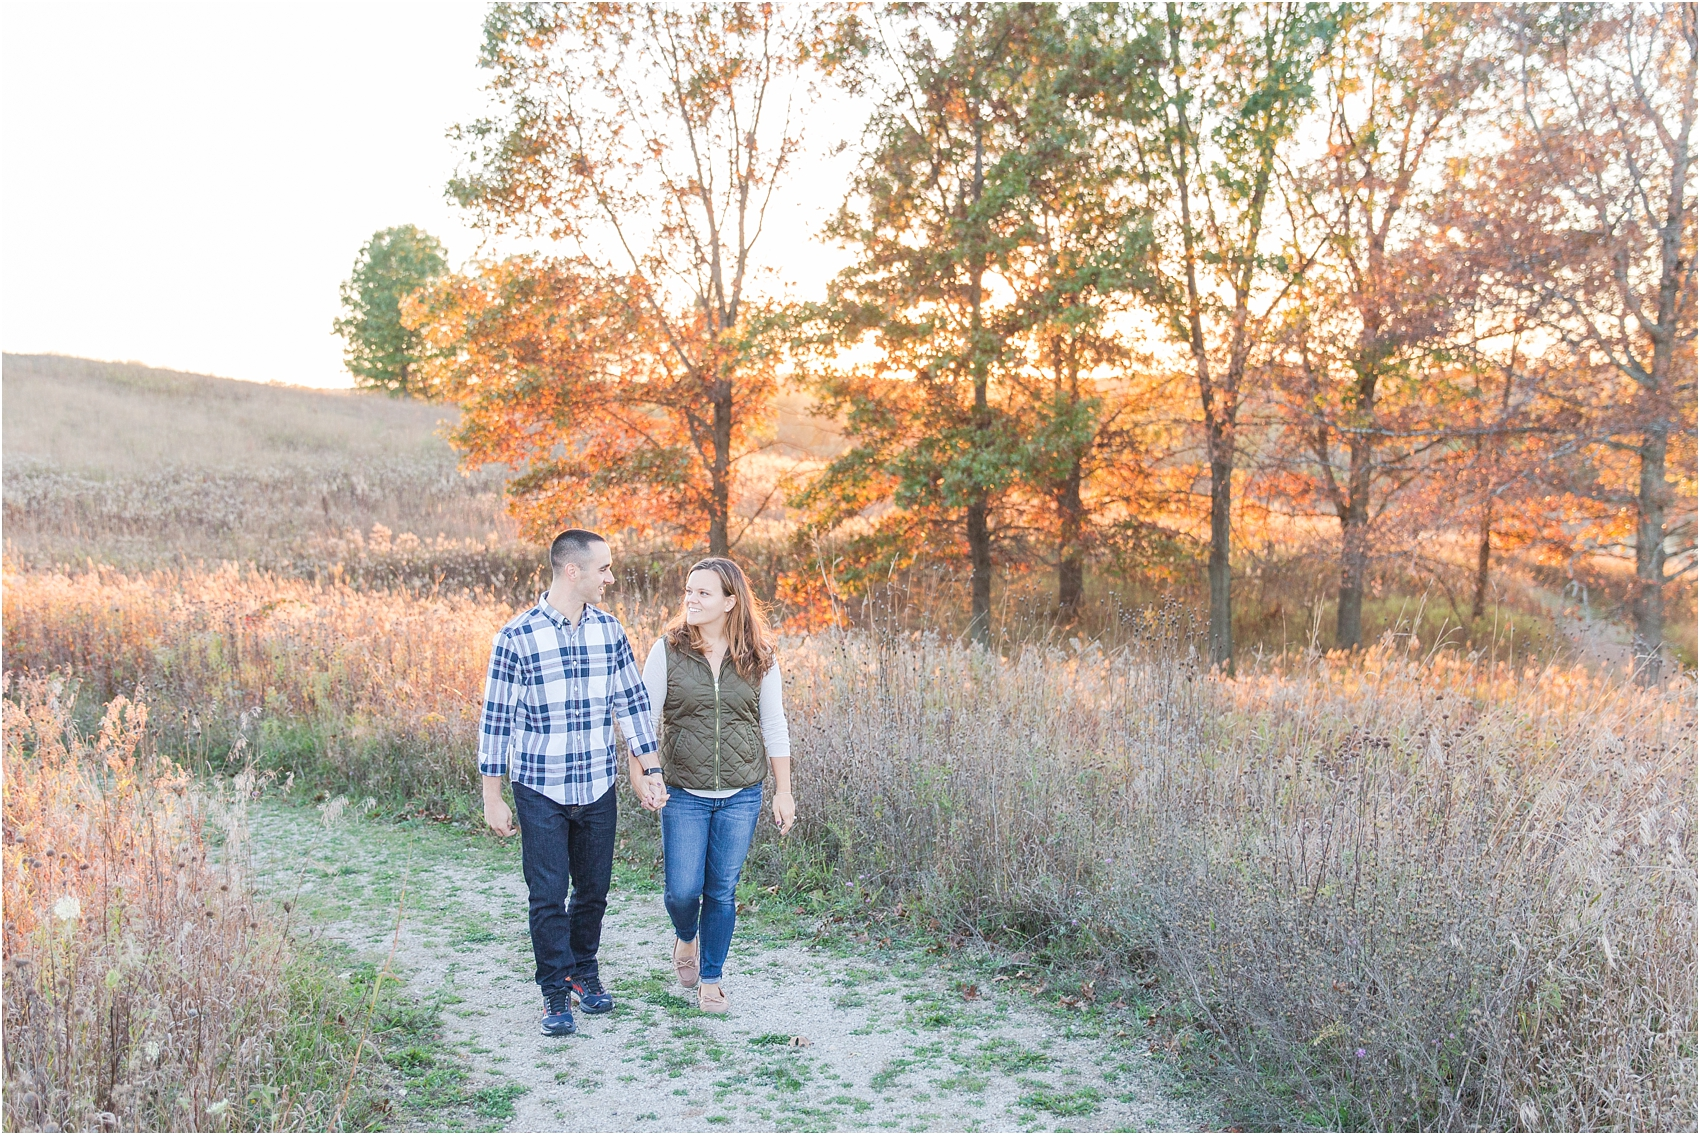 romantic-fall-engagement-photos-at-indian-springs-metropark-in-clarkston-mi-by-courtney-carolyn-photography_0012.jpg